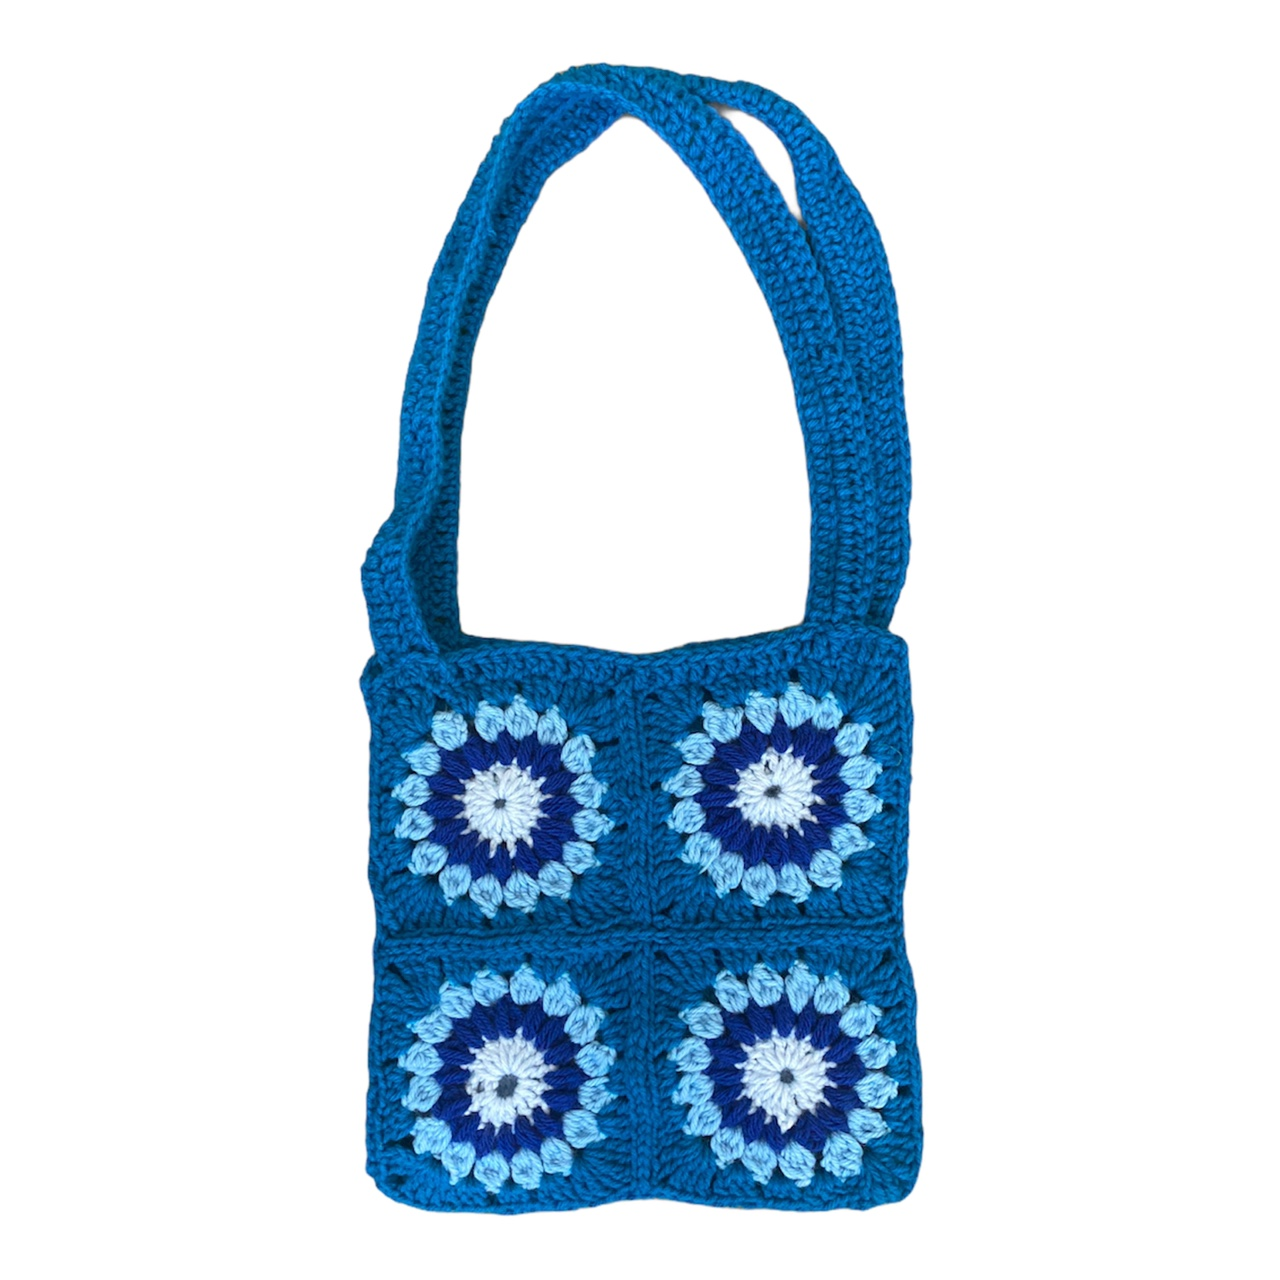 Product Image 1 - Handmade crochet bag 💙🦋🐟🌀  🧿dimensions are